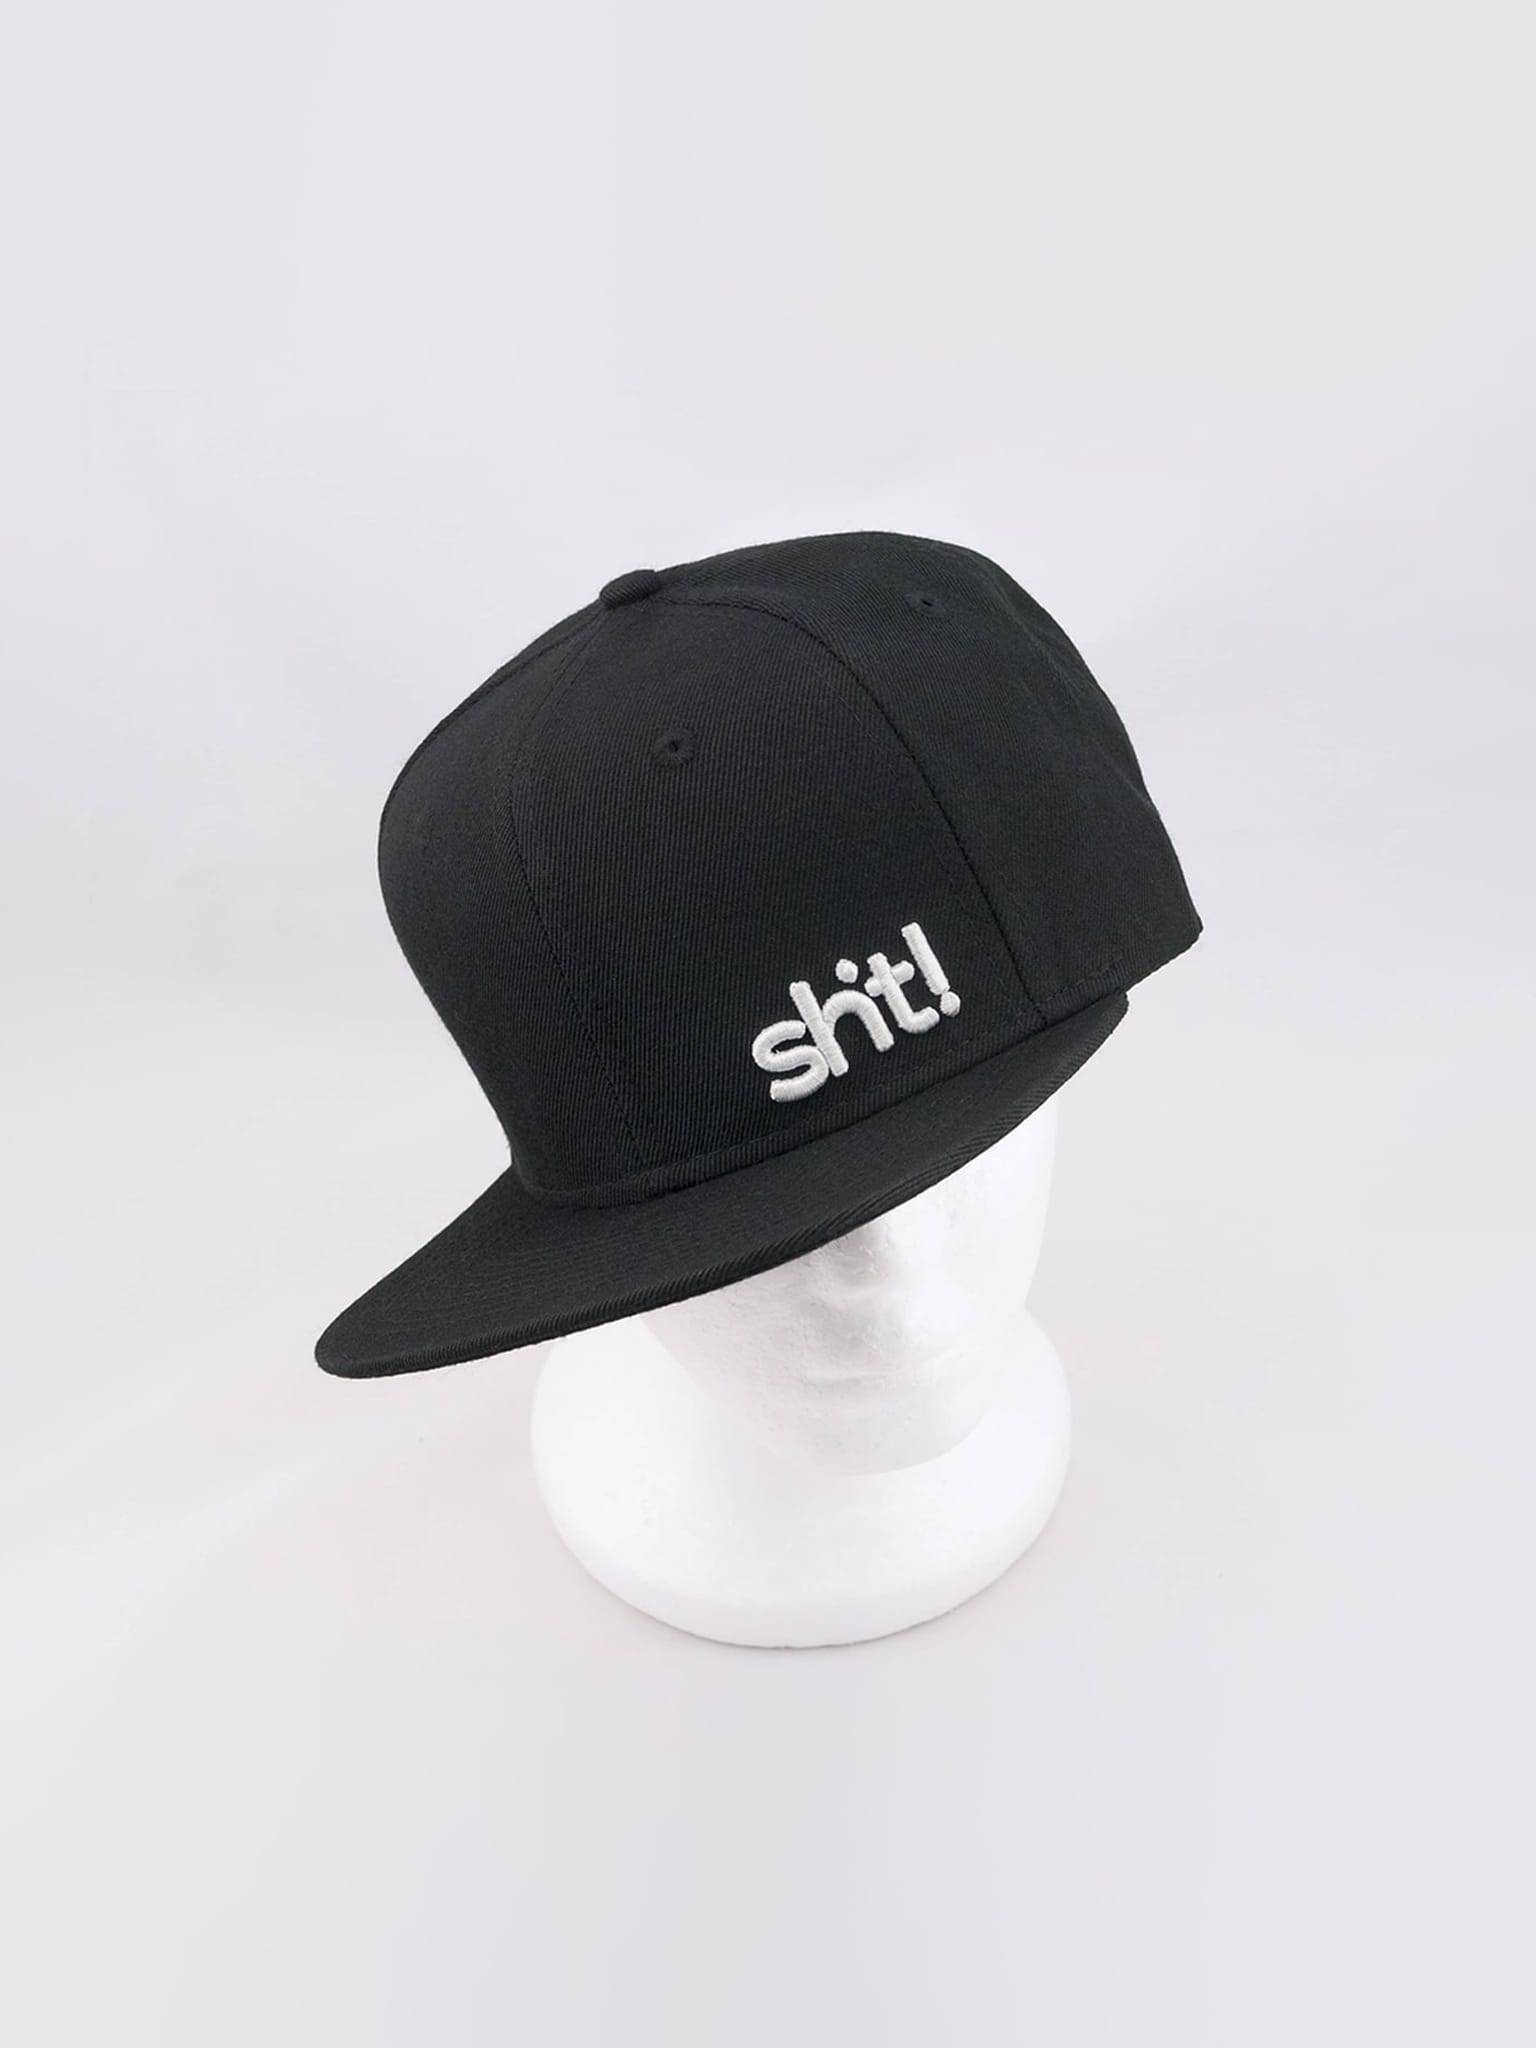 Black Snapback Cap - The embro